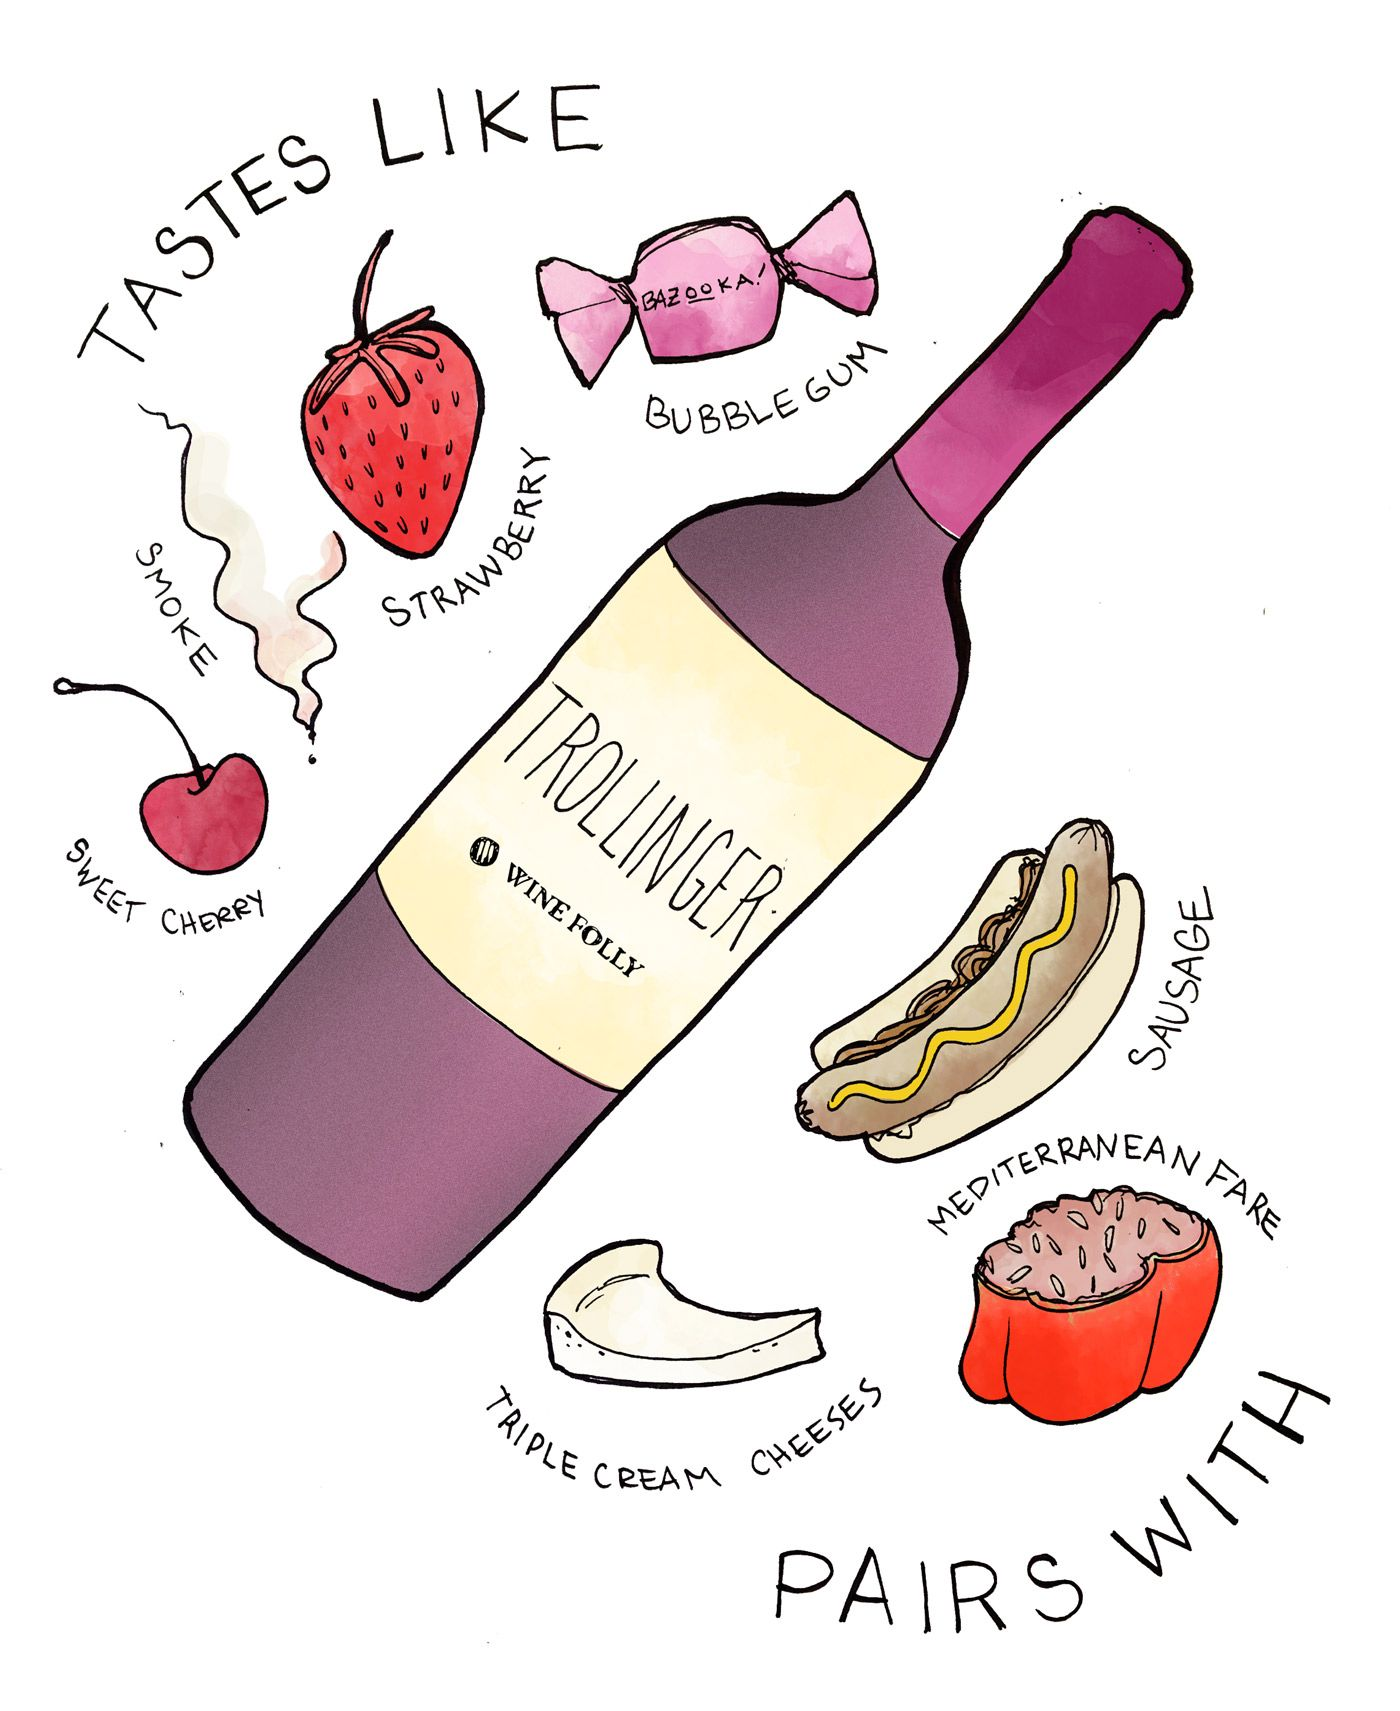 3 German Red Wines That Are Meant For Summer.